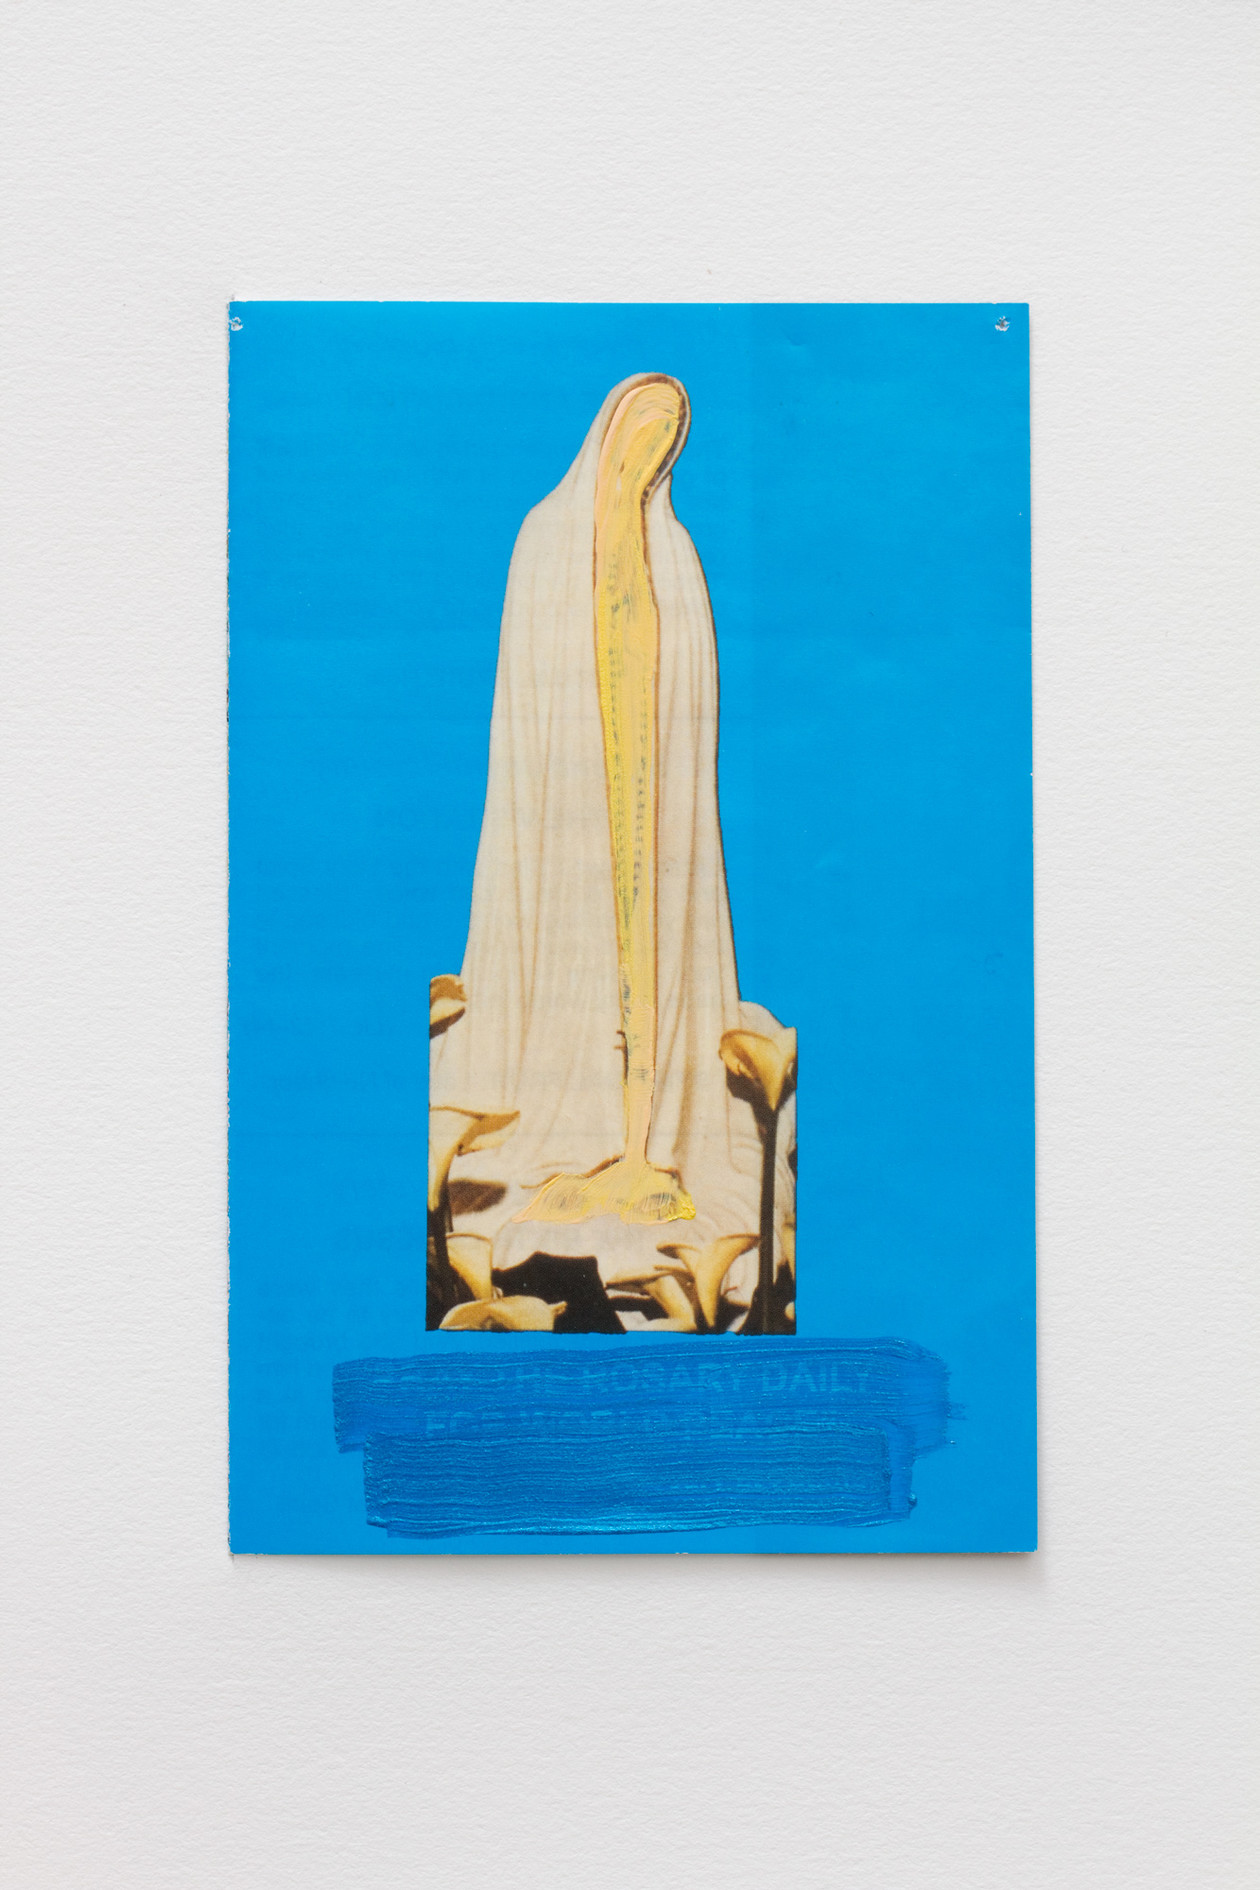 She does not touch the ground (Pray the Rosary Daily For World Peace) (2014) by Hayley Barker